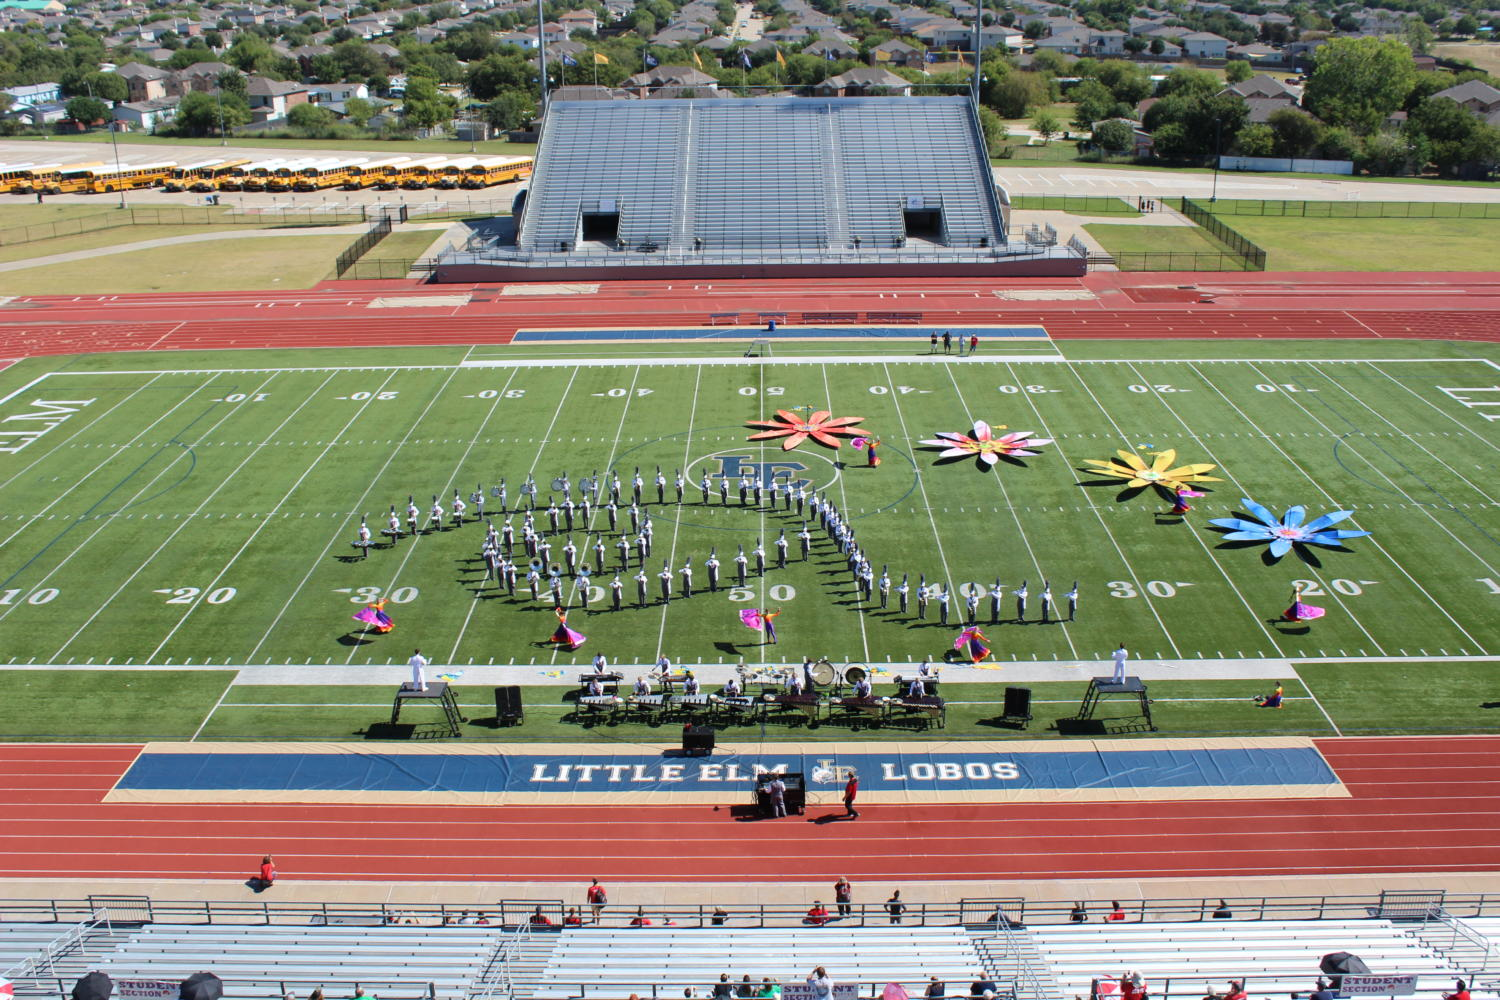 The Argyle High School Marching Band performs in the Little Elm Classic on the Lake on Oct. 7. (Photo by: Britt Flaten)